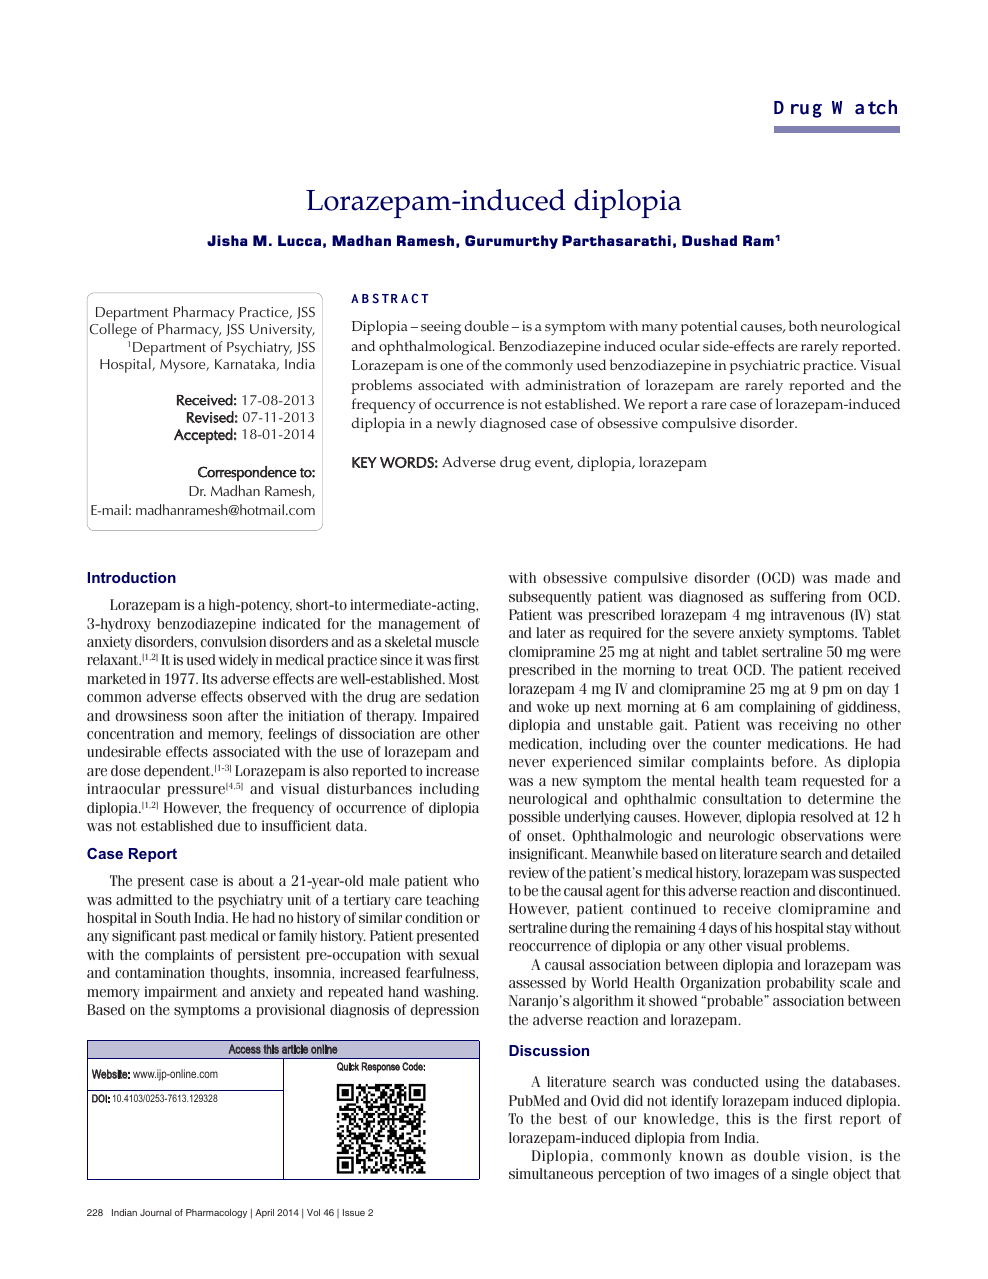 Lorazepam-induced diplopia – topic of research paper in